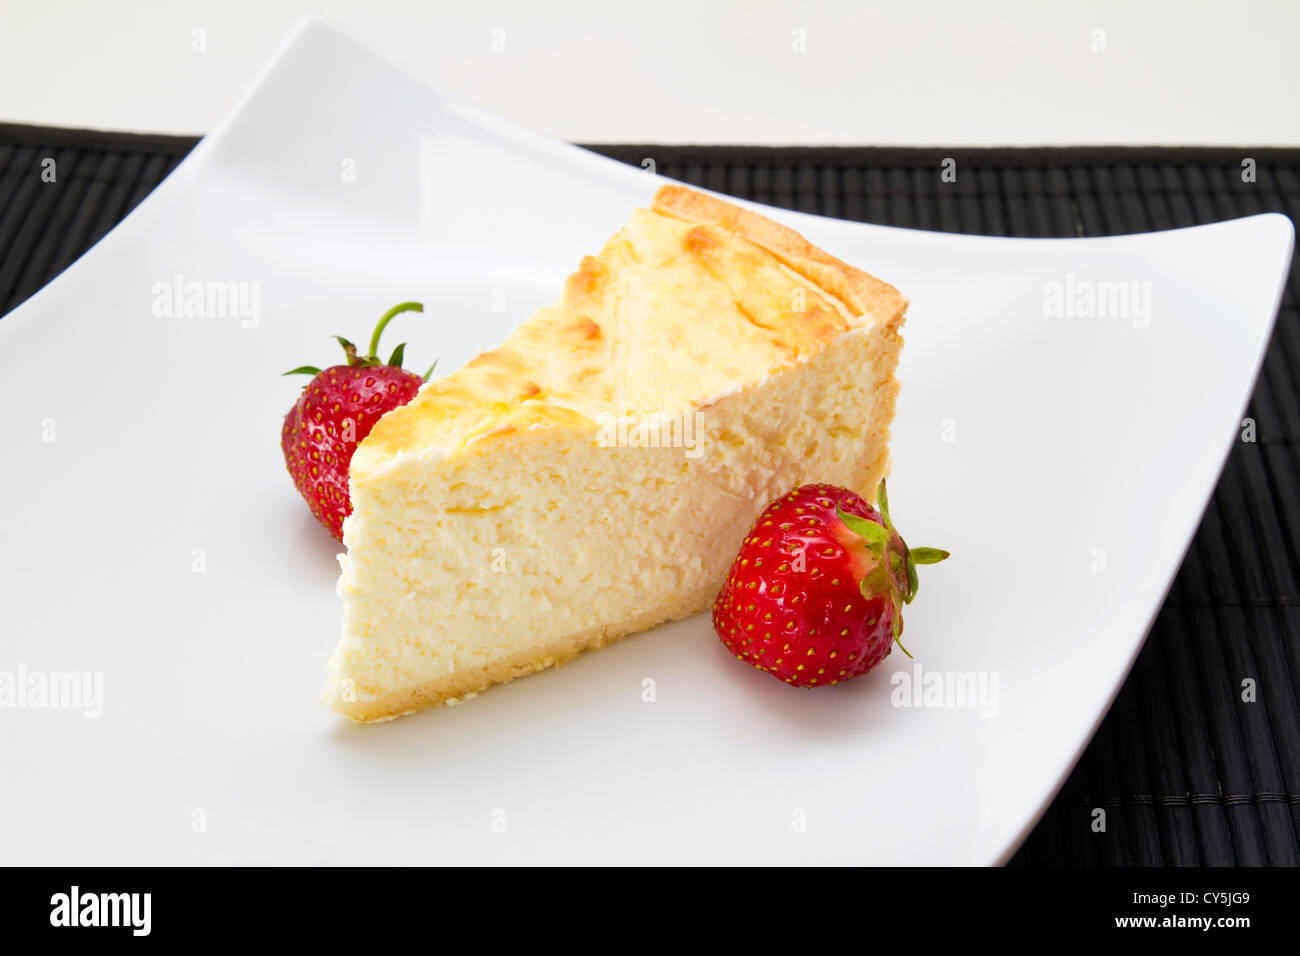 Cheesecake with strawberries and coffee - Stock Image